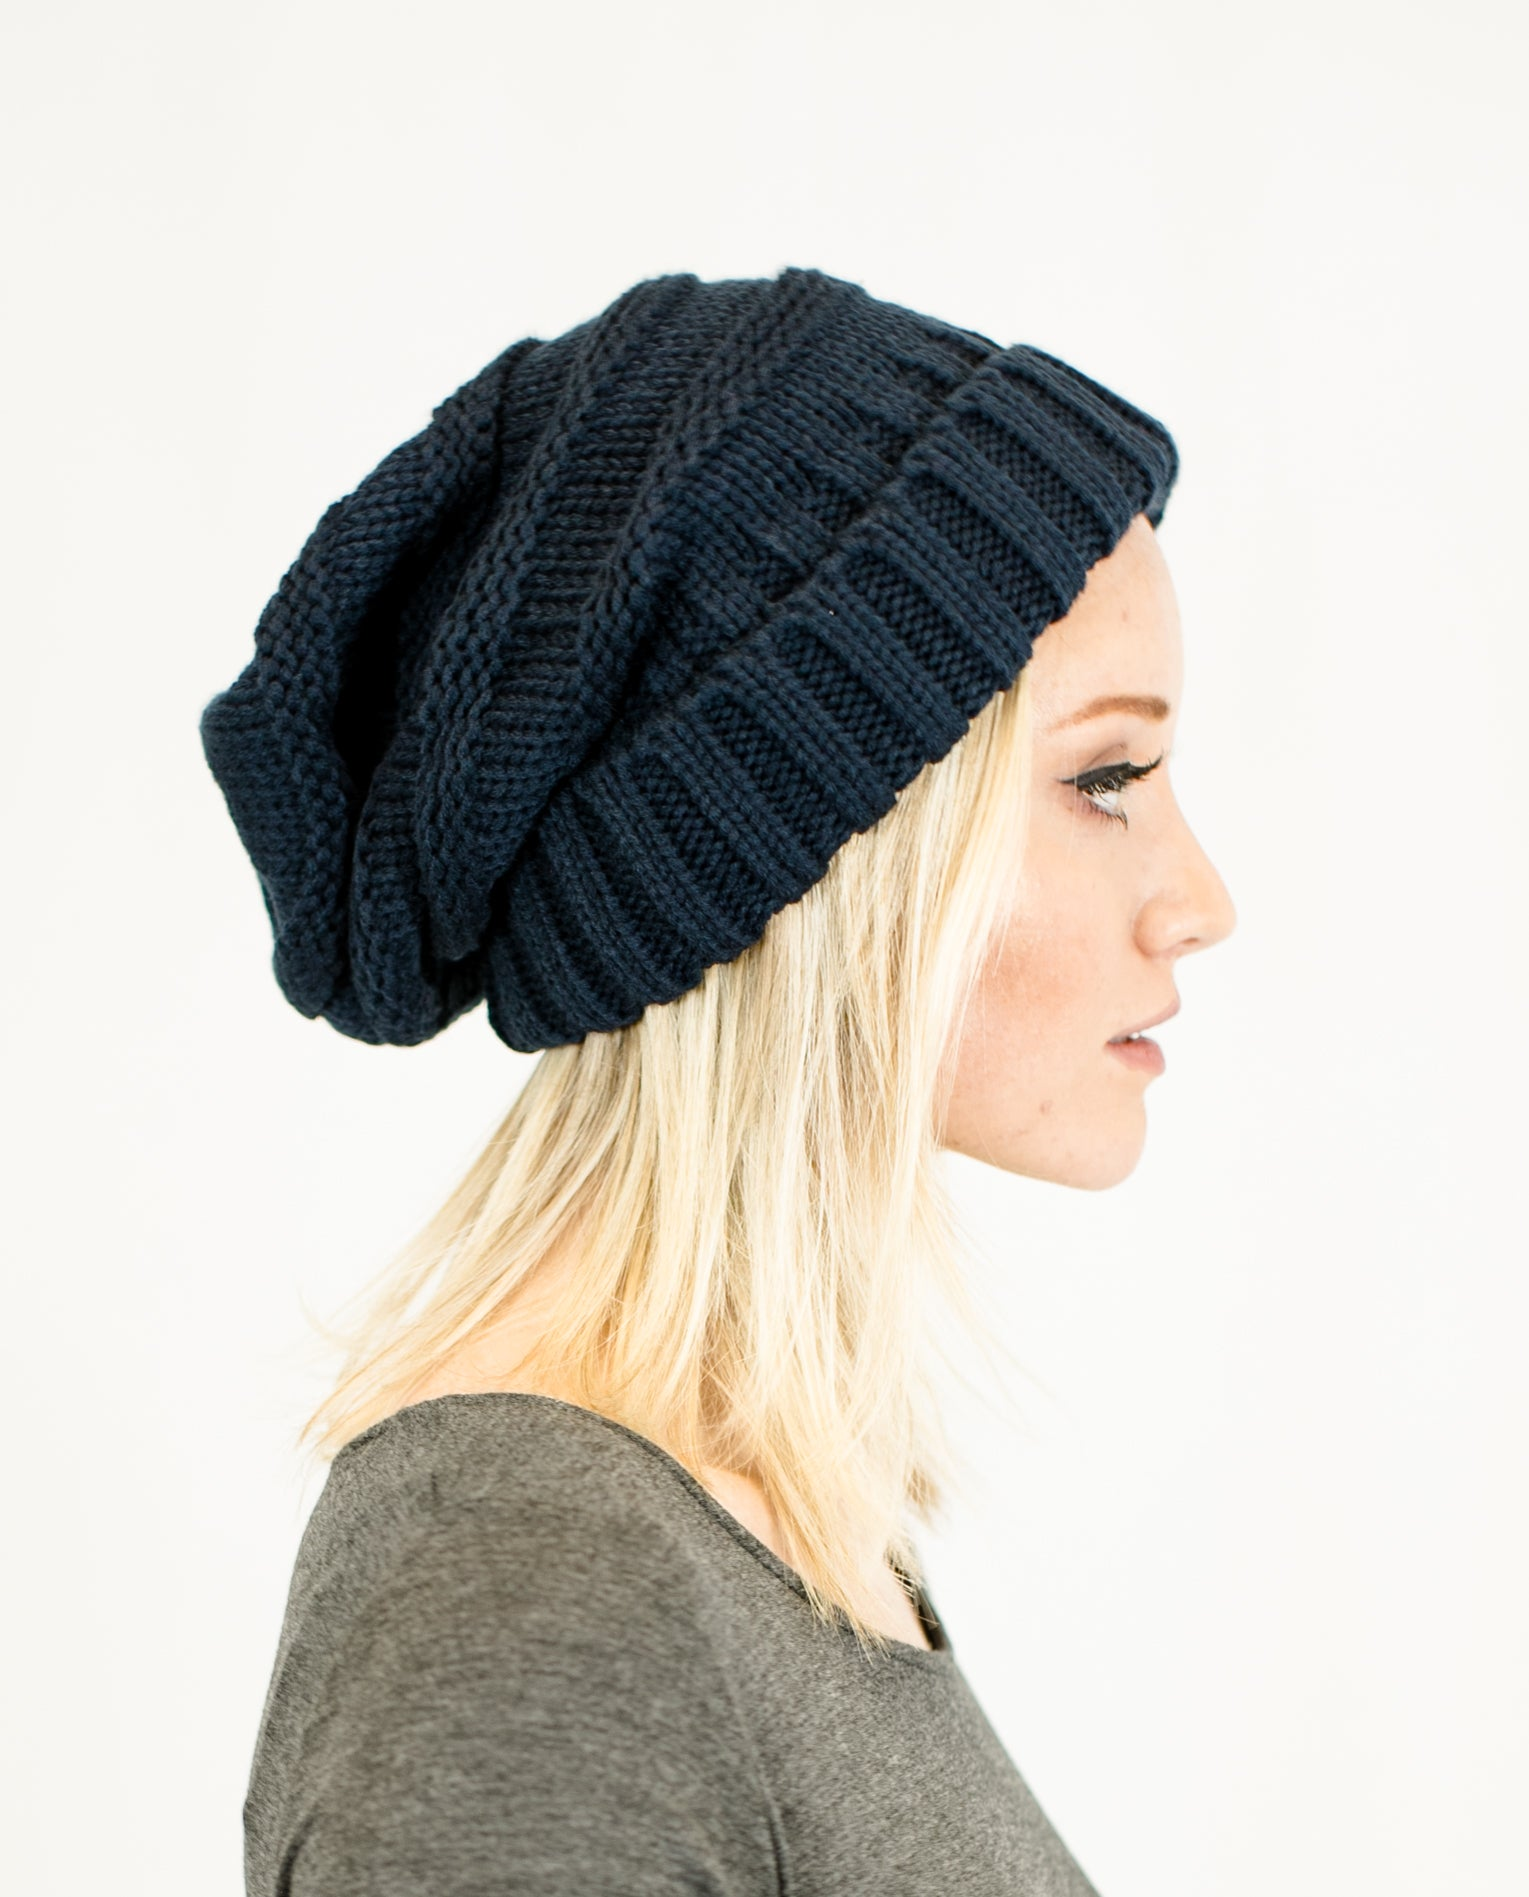 Unisex Solid Color Knit Oversized Slouchy Beanie - Niobe Clothing 2e006730668